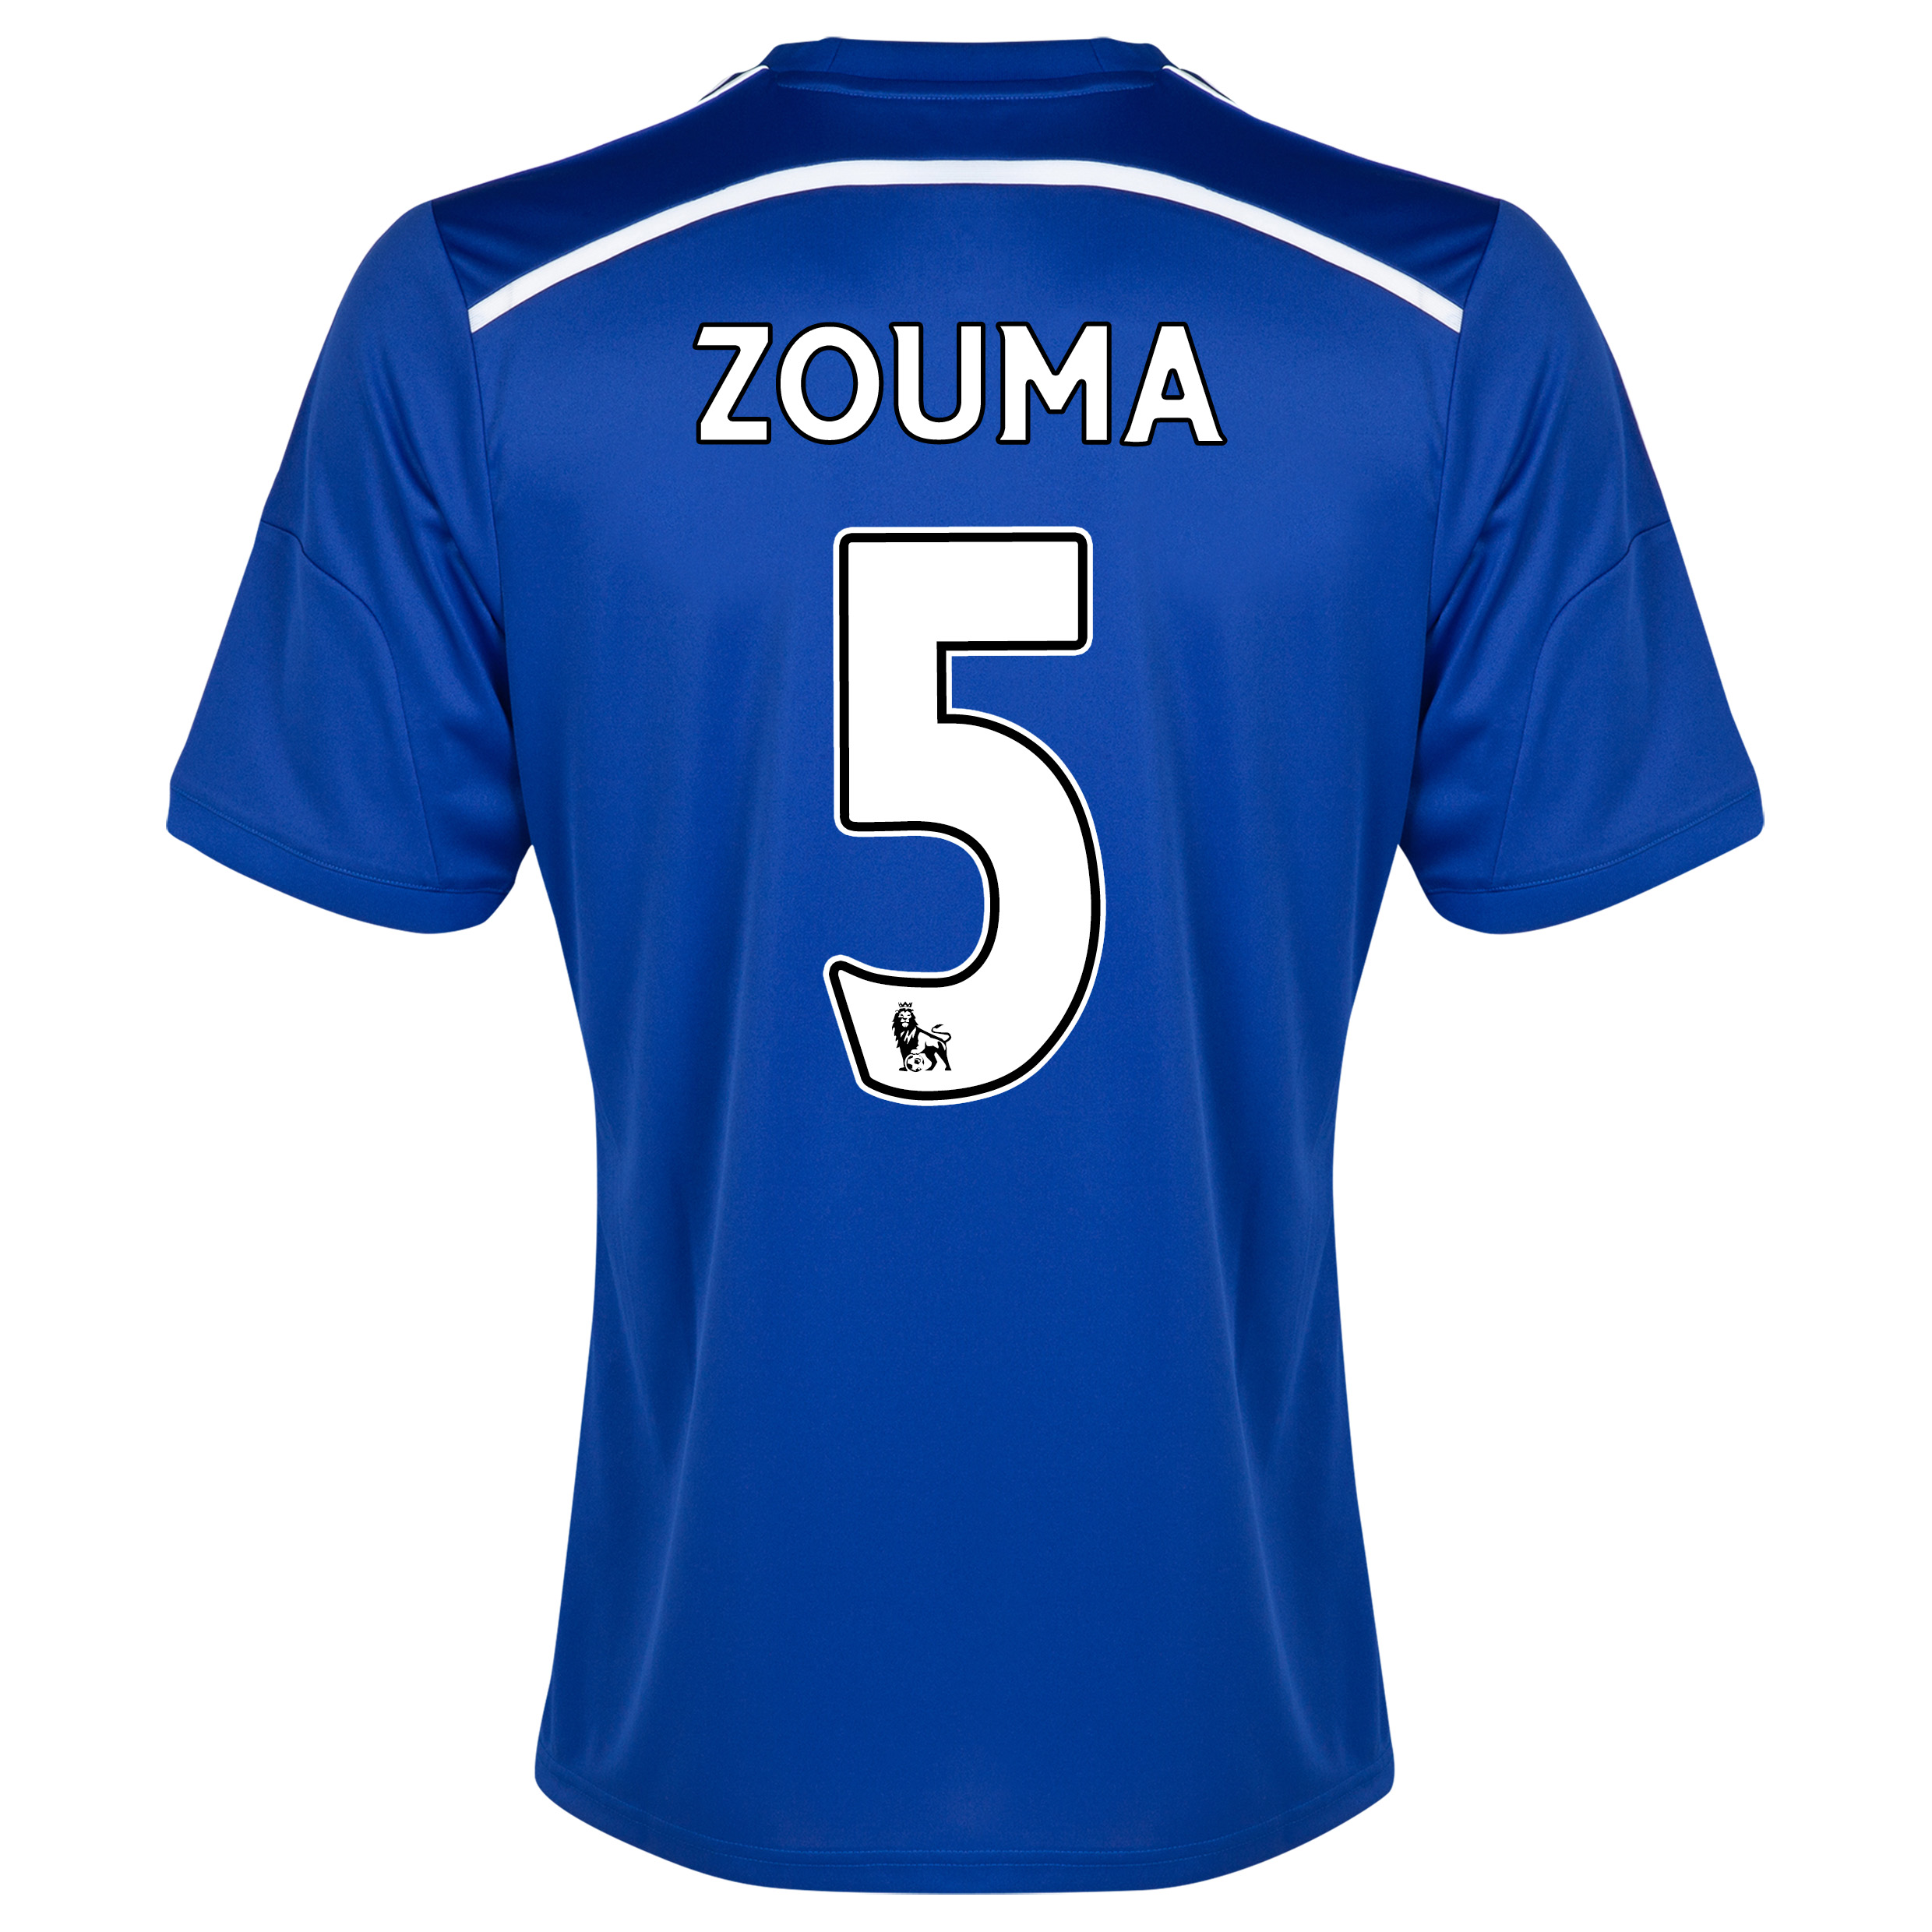 Chelsea Home Shirt 2014/15 with ZOUMA 5 printing